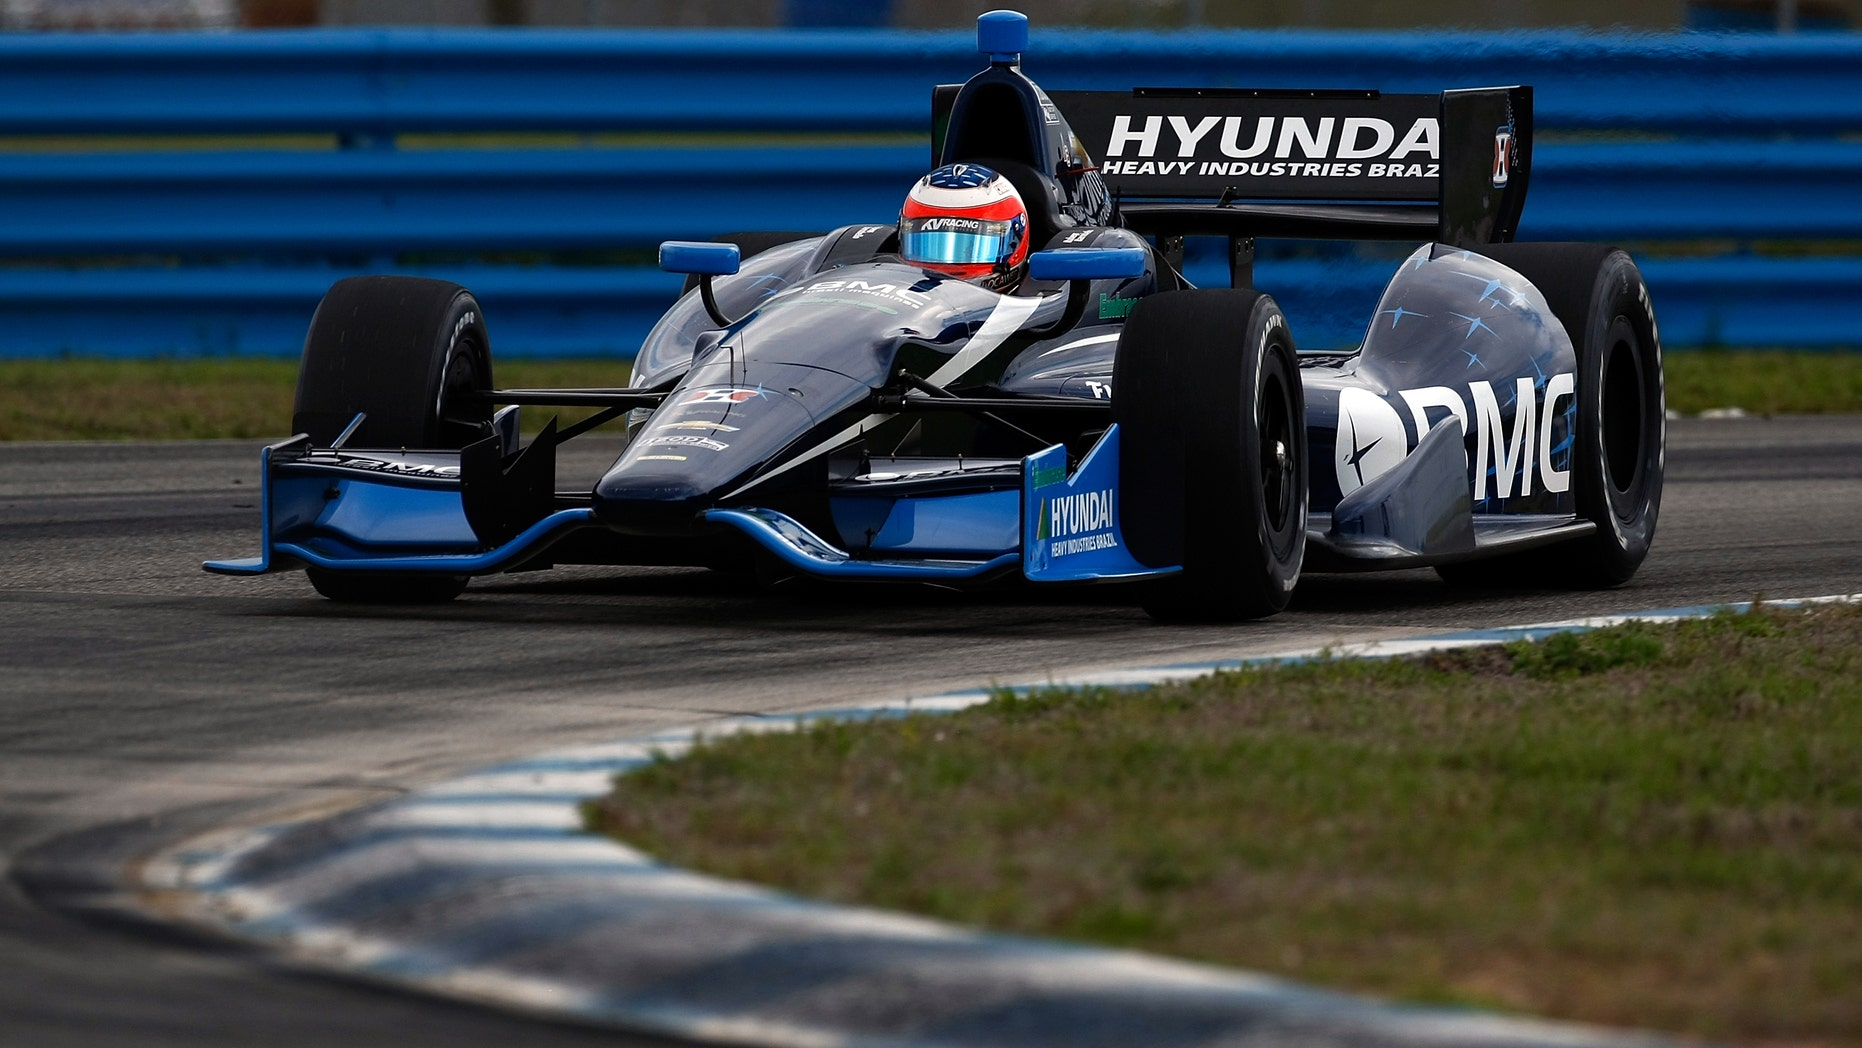 SEBRING, FL - MARCH 08:  Rubens Barichello of Brazil drives his #8 BMC KV Racing Technolgy Chevy Dallara DW12 during the Sebring Open Test for the IZOD INDYCAR Series at Sebring International Raceway on March 8, 2012 in Sebring, Florida.  (Photo by Jonathan Ferrey/Getty Images)